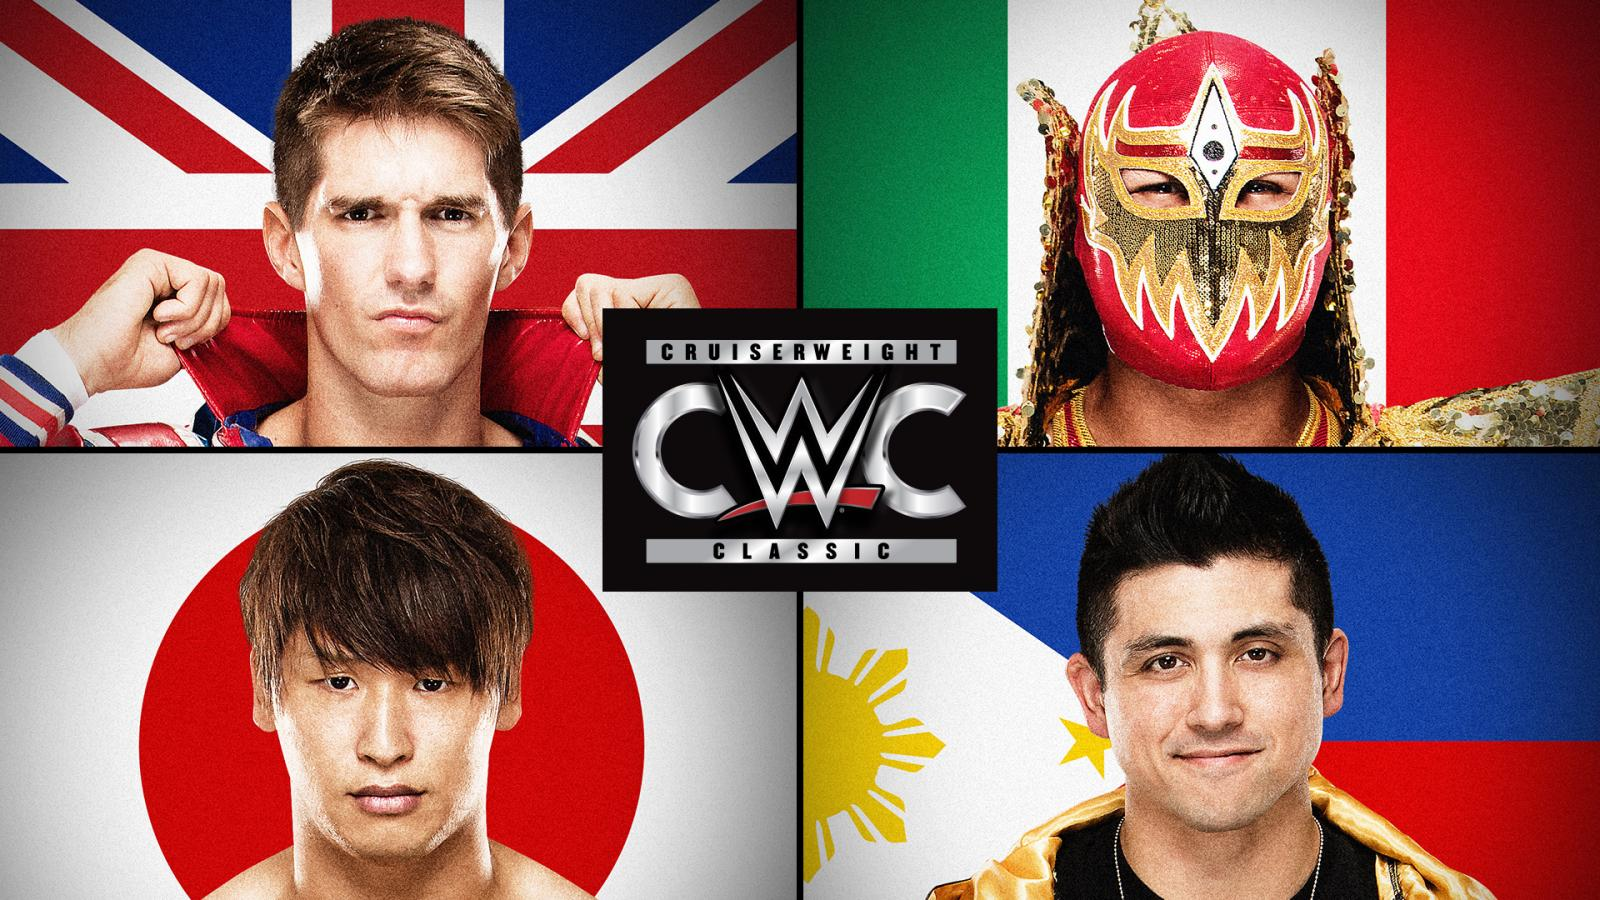 Things We Learned From The WWE Cruiserweight Classic